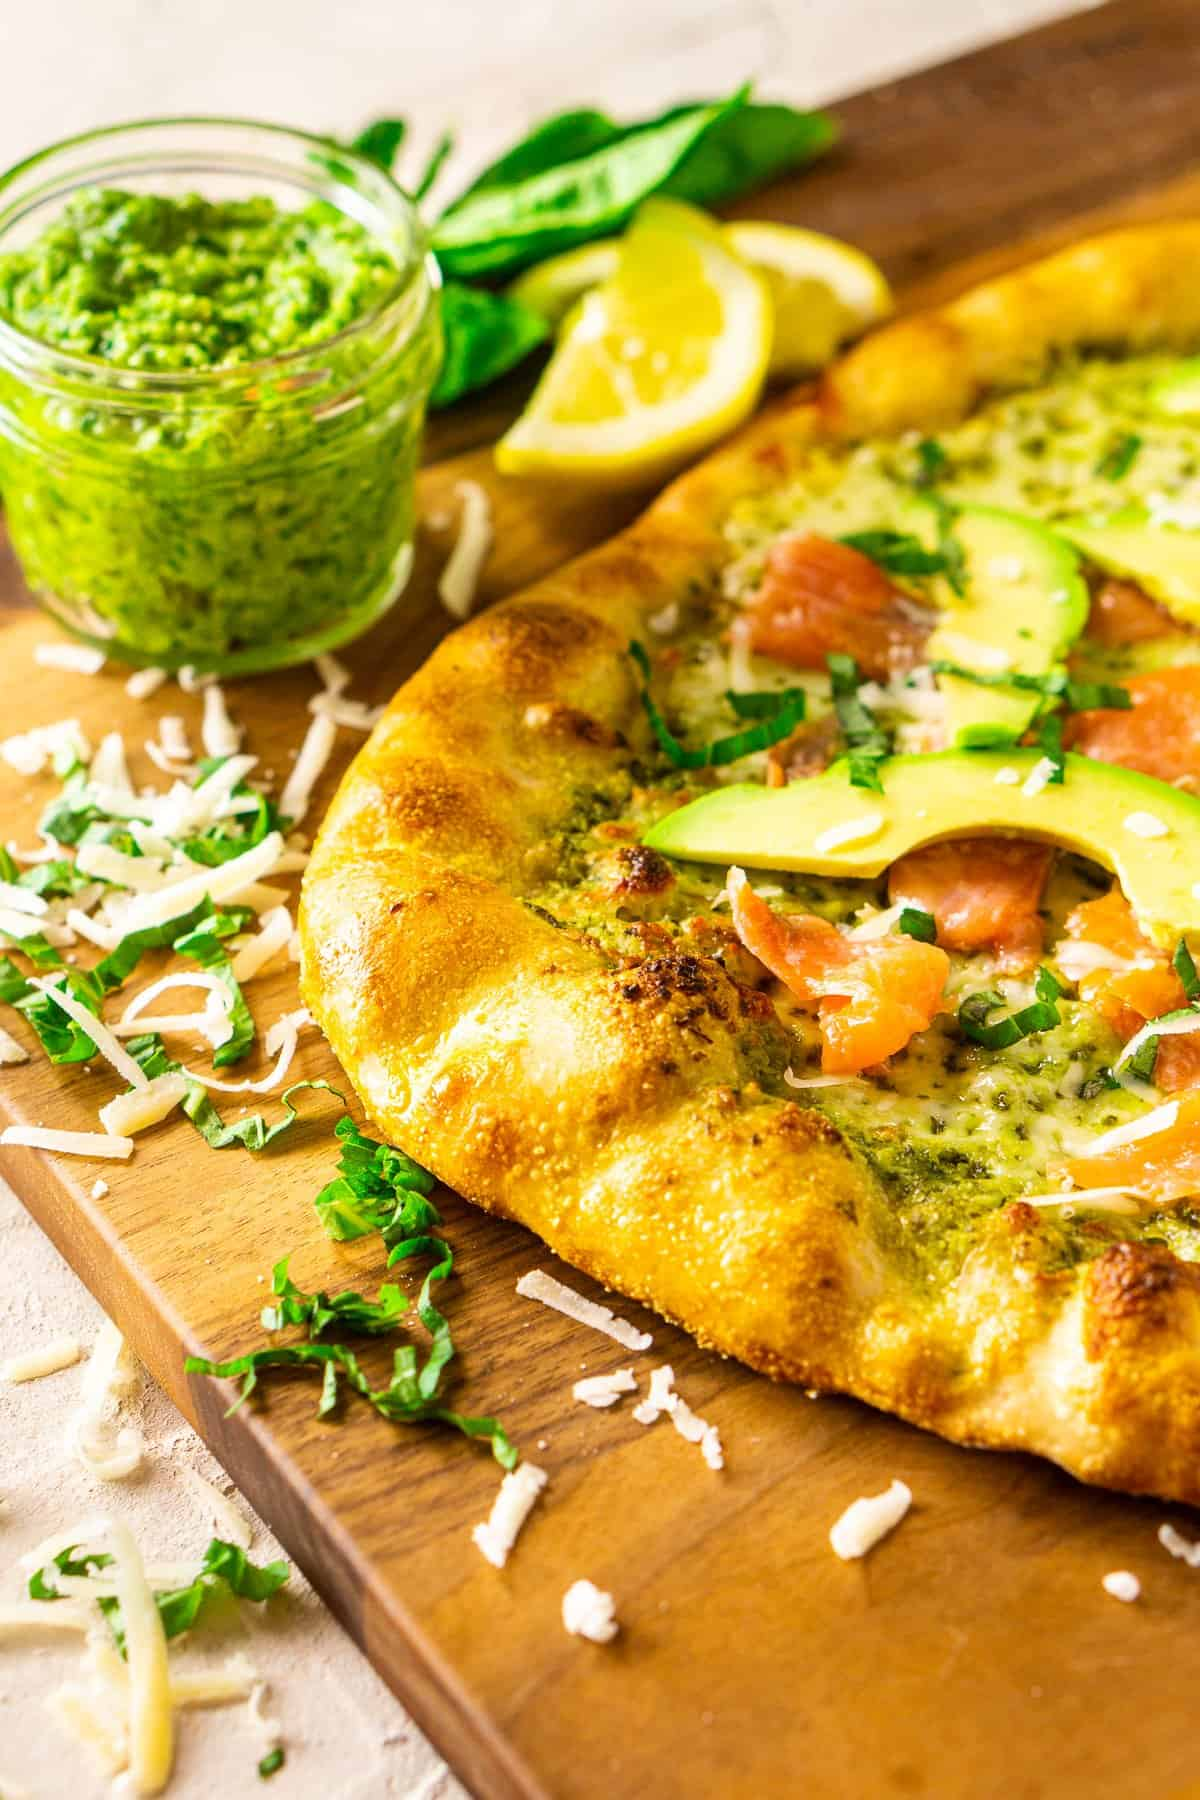 The smoked salmon and avocado pizza with pesto on a wooden cutting board with a jar of pesto, herbs and cheese around it.